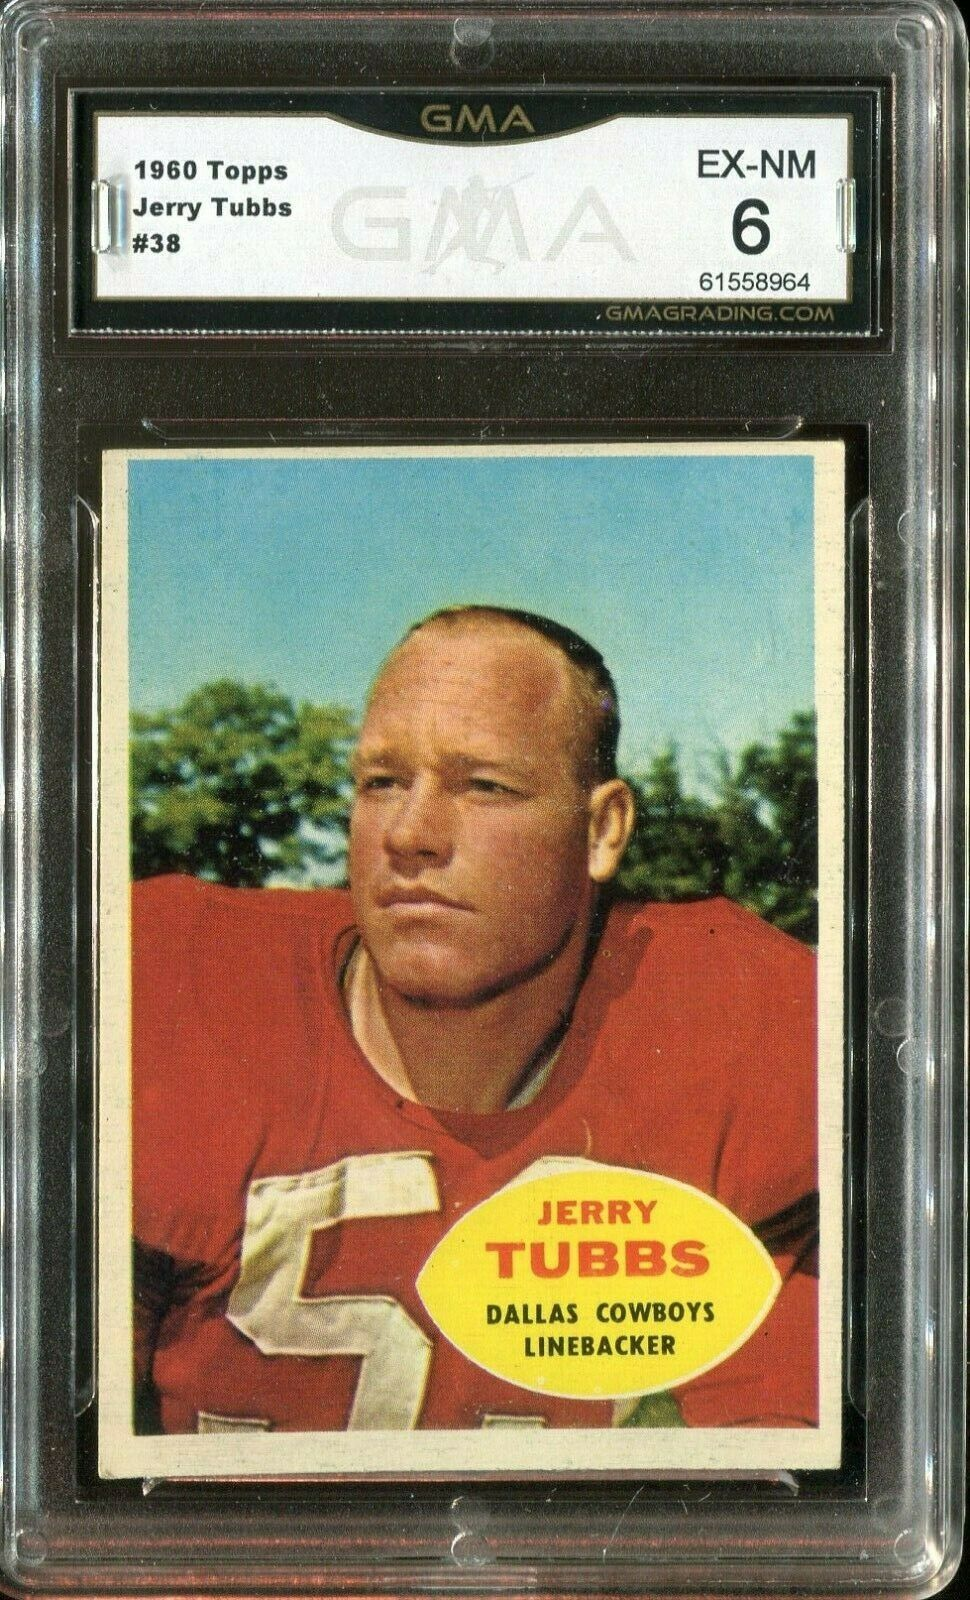 Primary image for 1960 Topps Football Jerry Tubbs #38 - Dallas Cowboys (GMA Graded EX-NM 6)